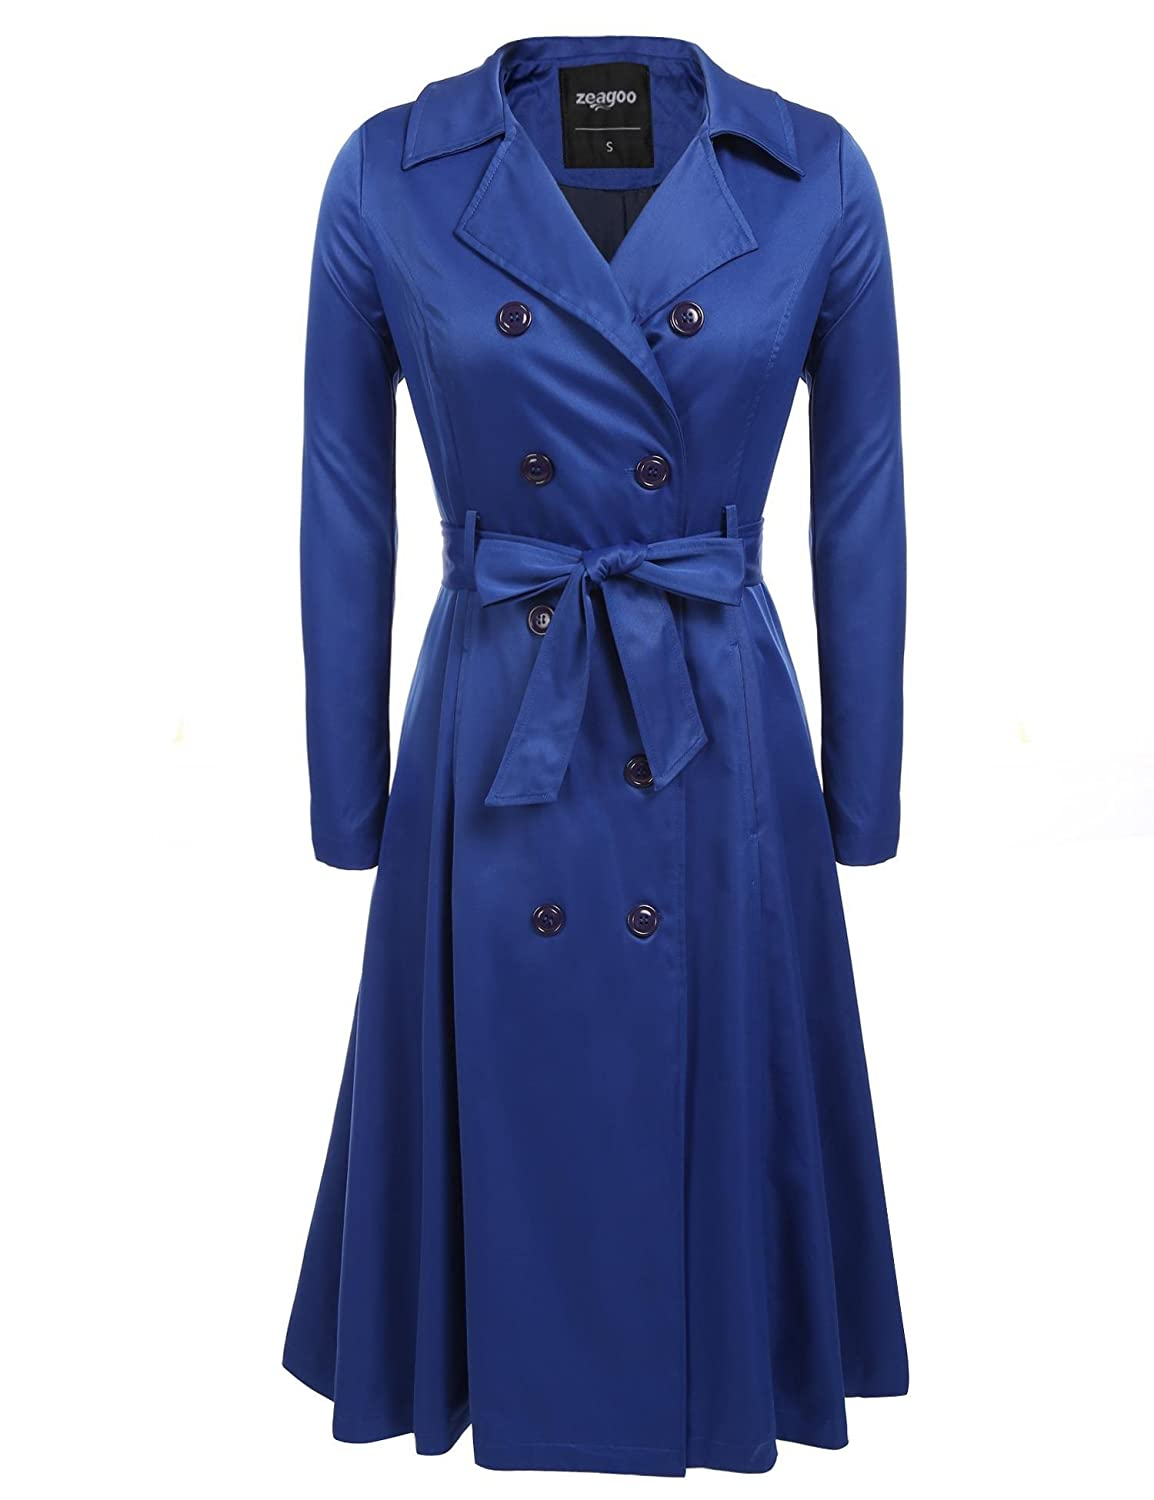 1940s Coats & Jackets Fashion History Zeagoo Womens Double-Breasted Long Trench Coat with Belt $59.88 AT vintagedancer.com